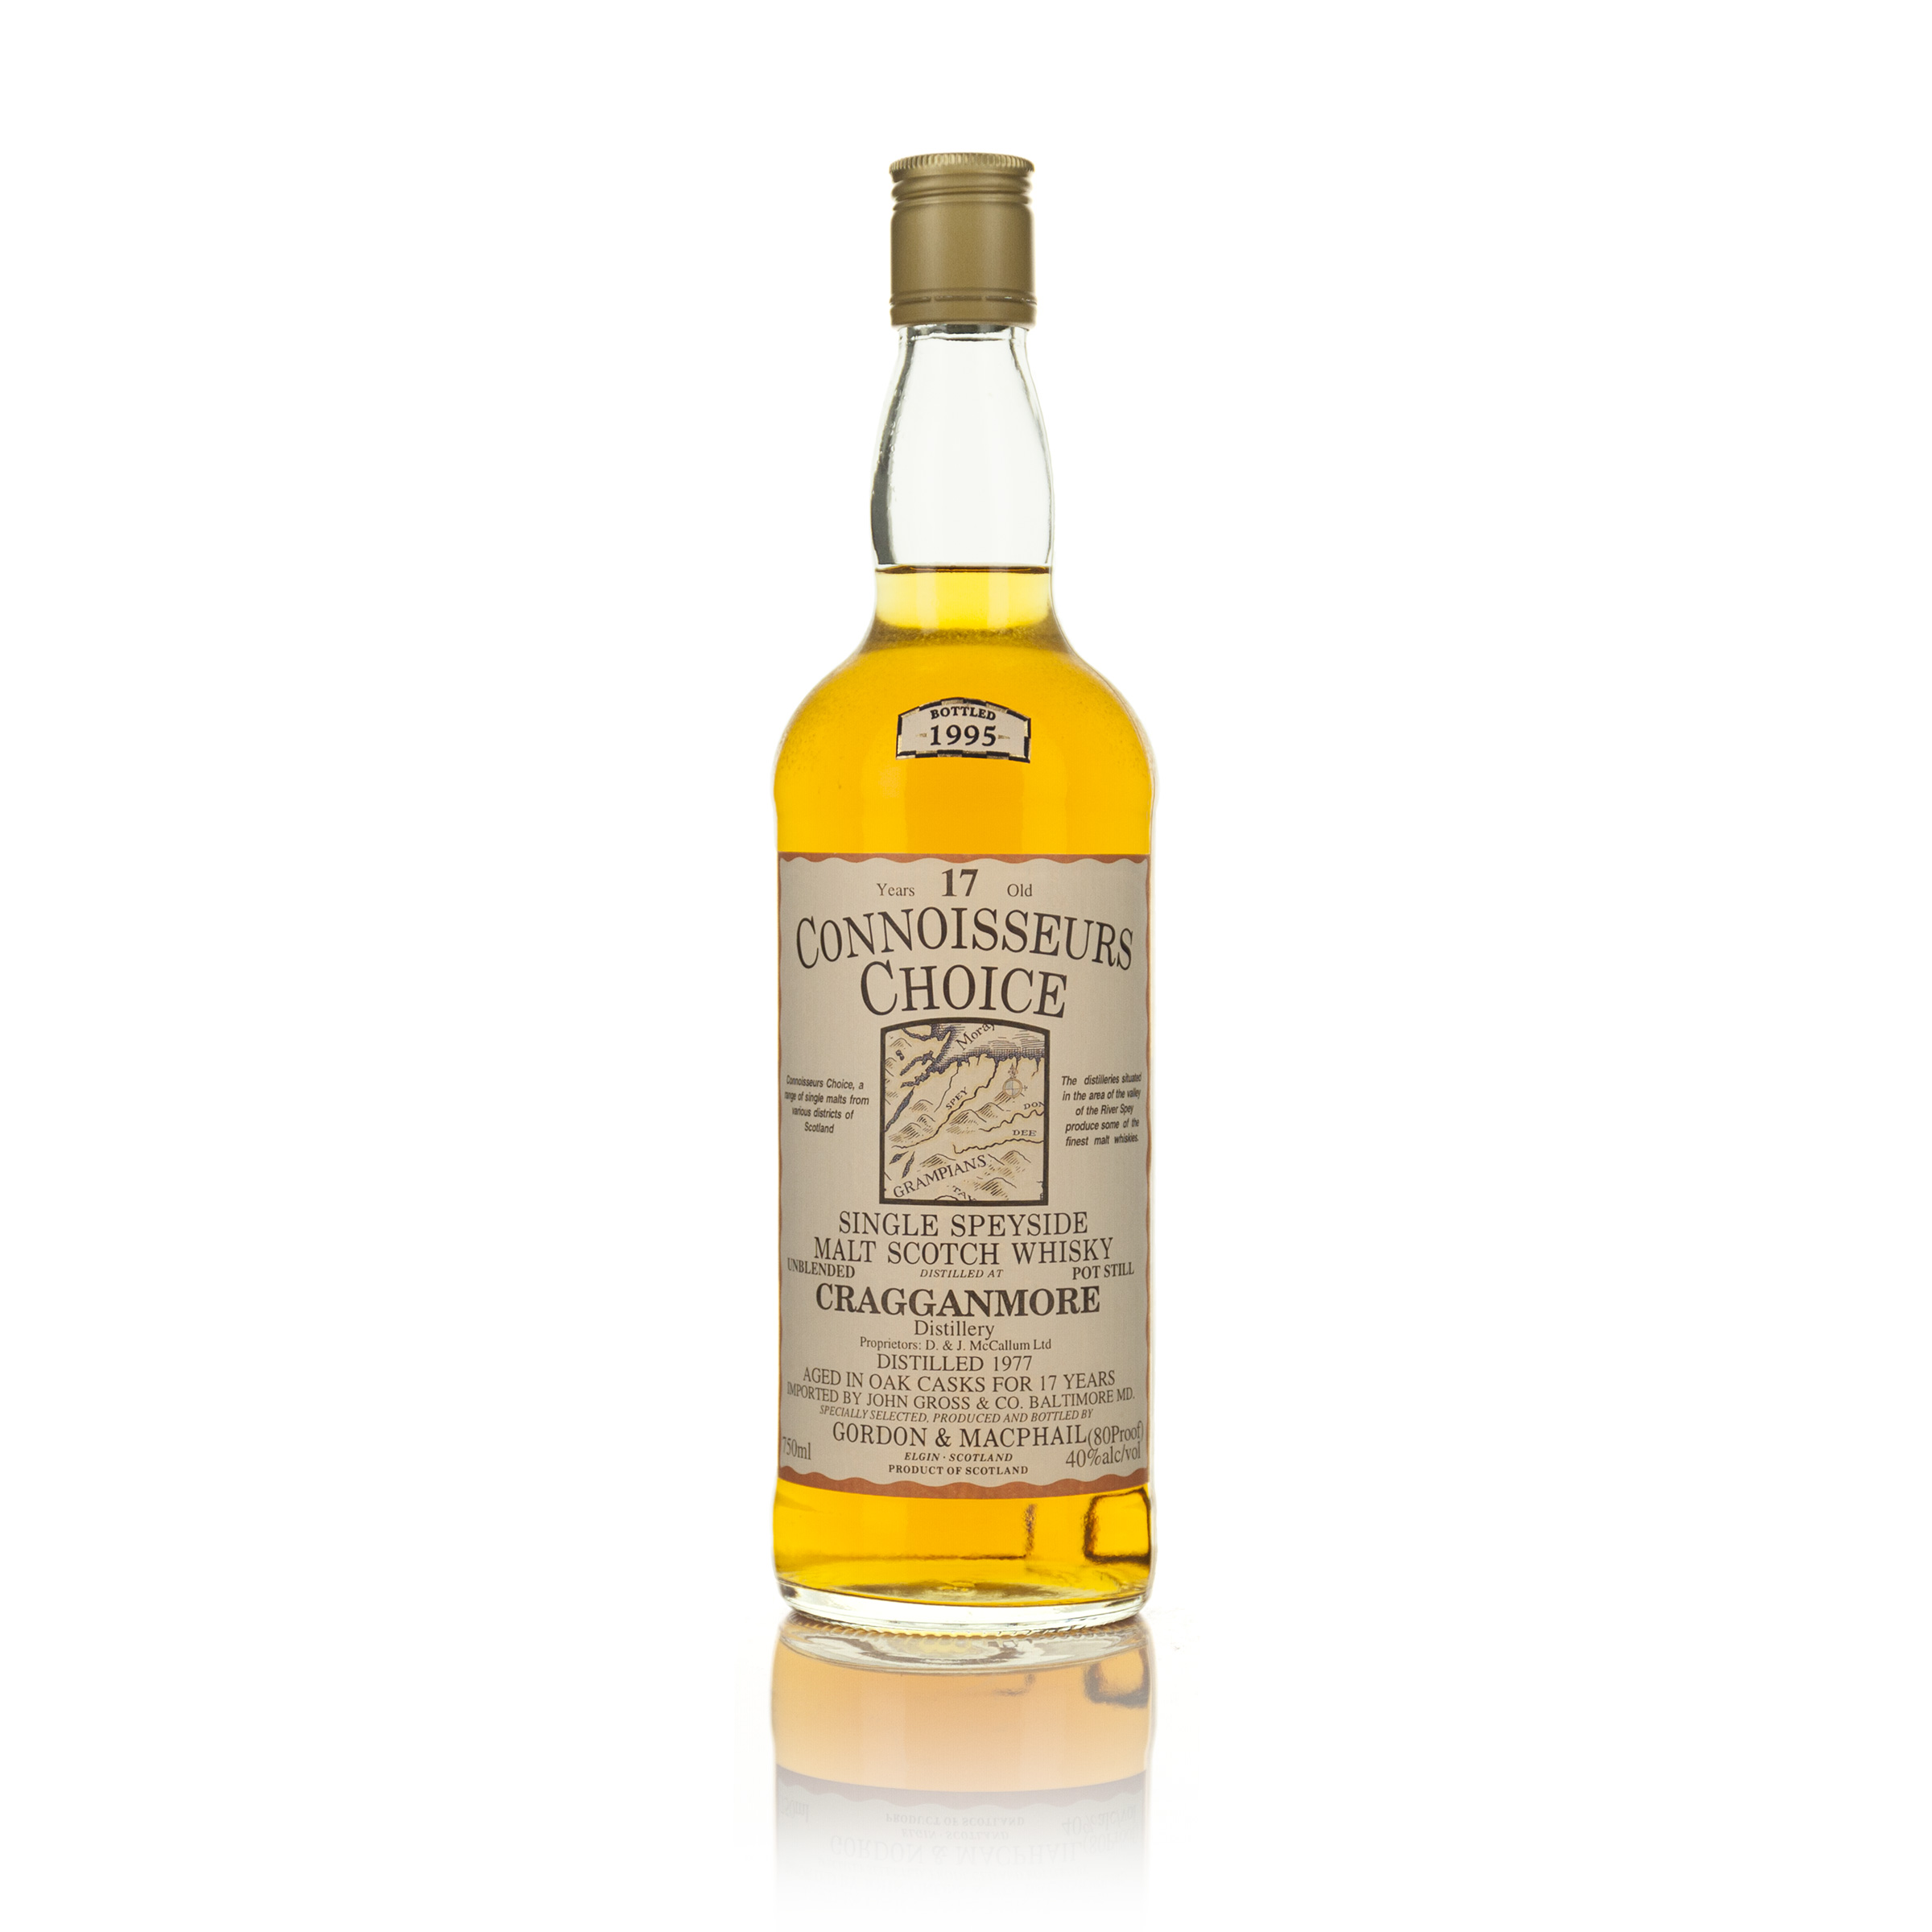 CRAGGANMORE SINGLE SPEYSIDE MALT WHISKY 17 YEARS (ONE 750 ML)